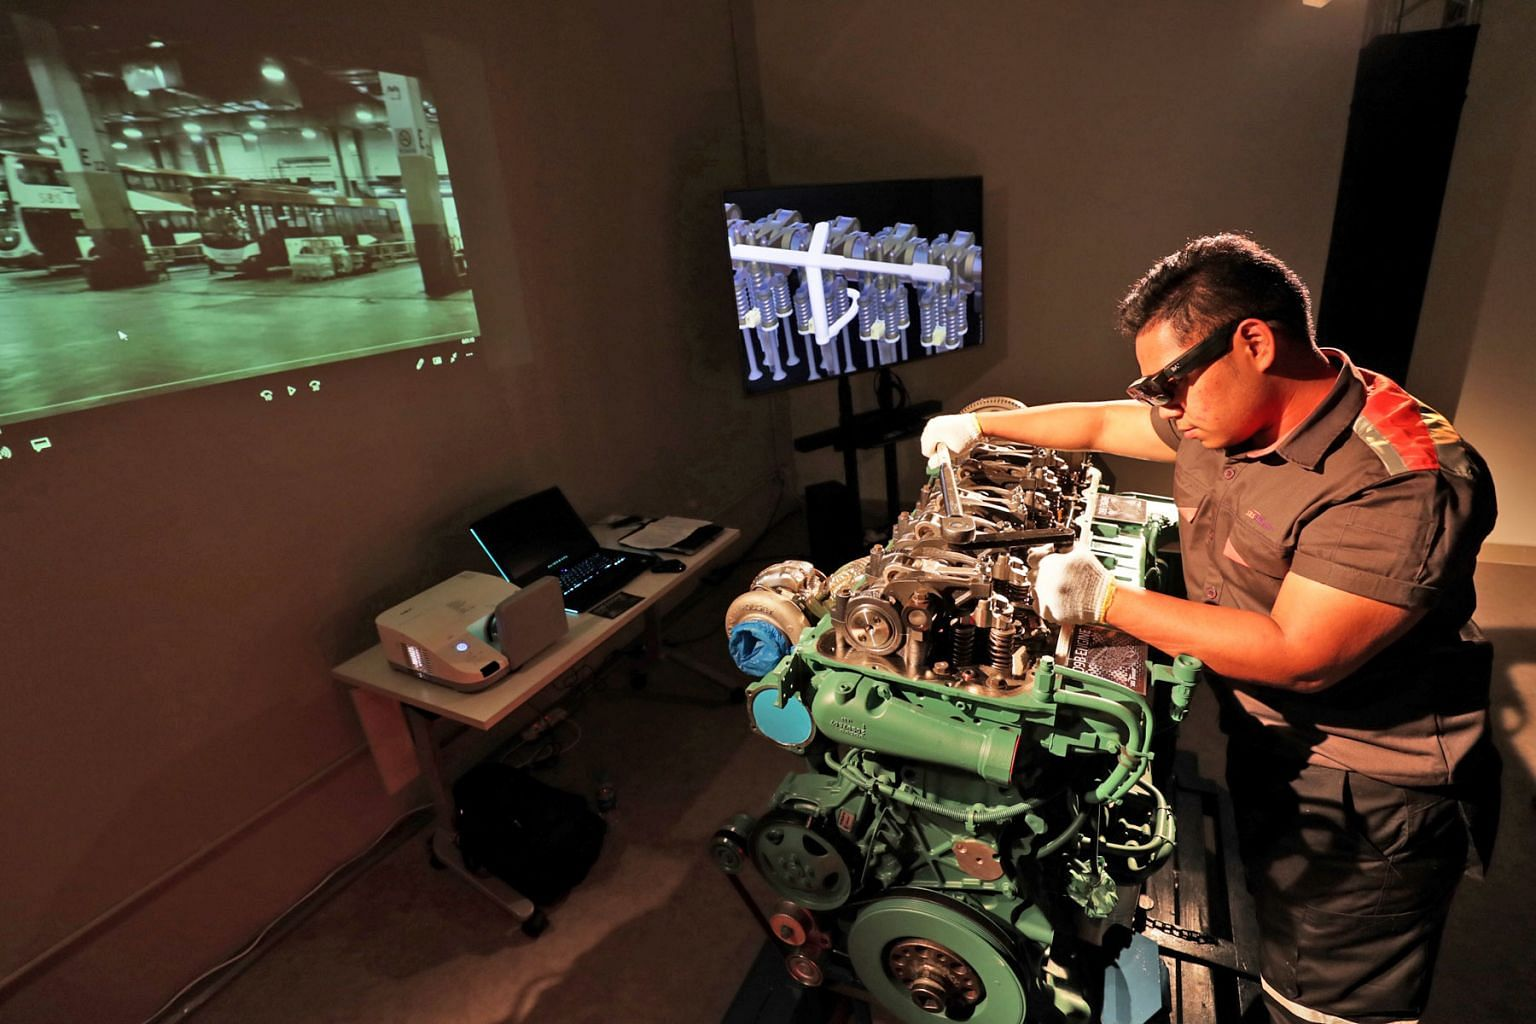 Technicians at the new Bus Technical Specialist Certification Centre, located at the Ulu Pandan Bus Depot, use augmented reality glasses as part of their training.